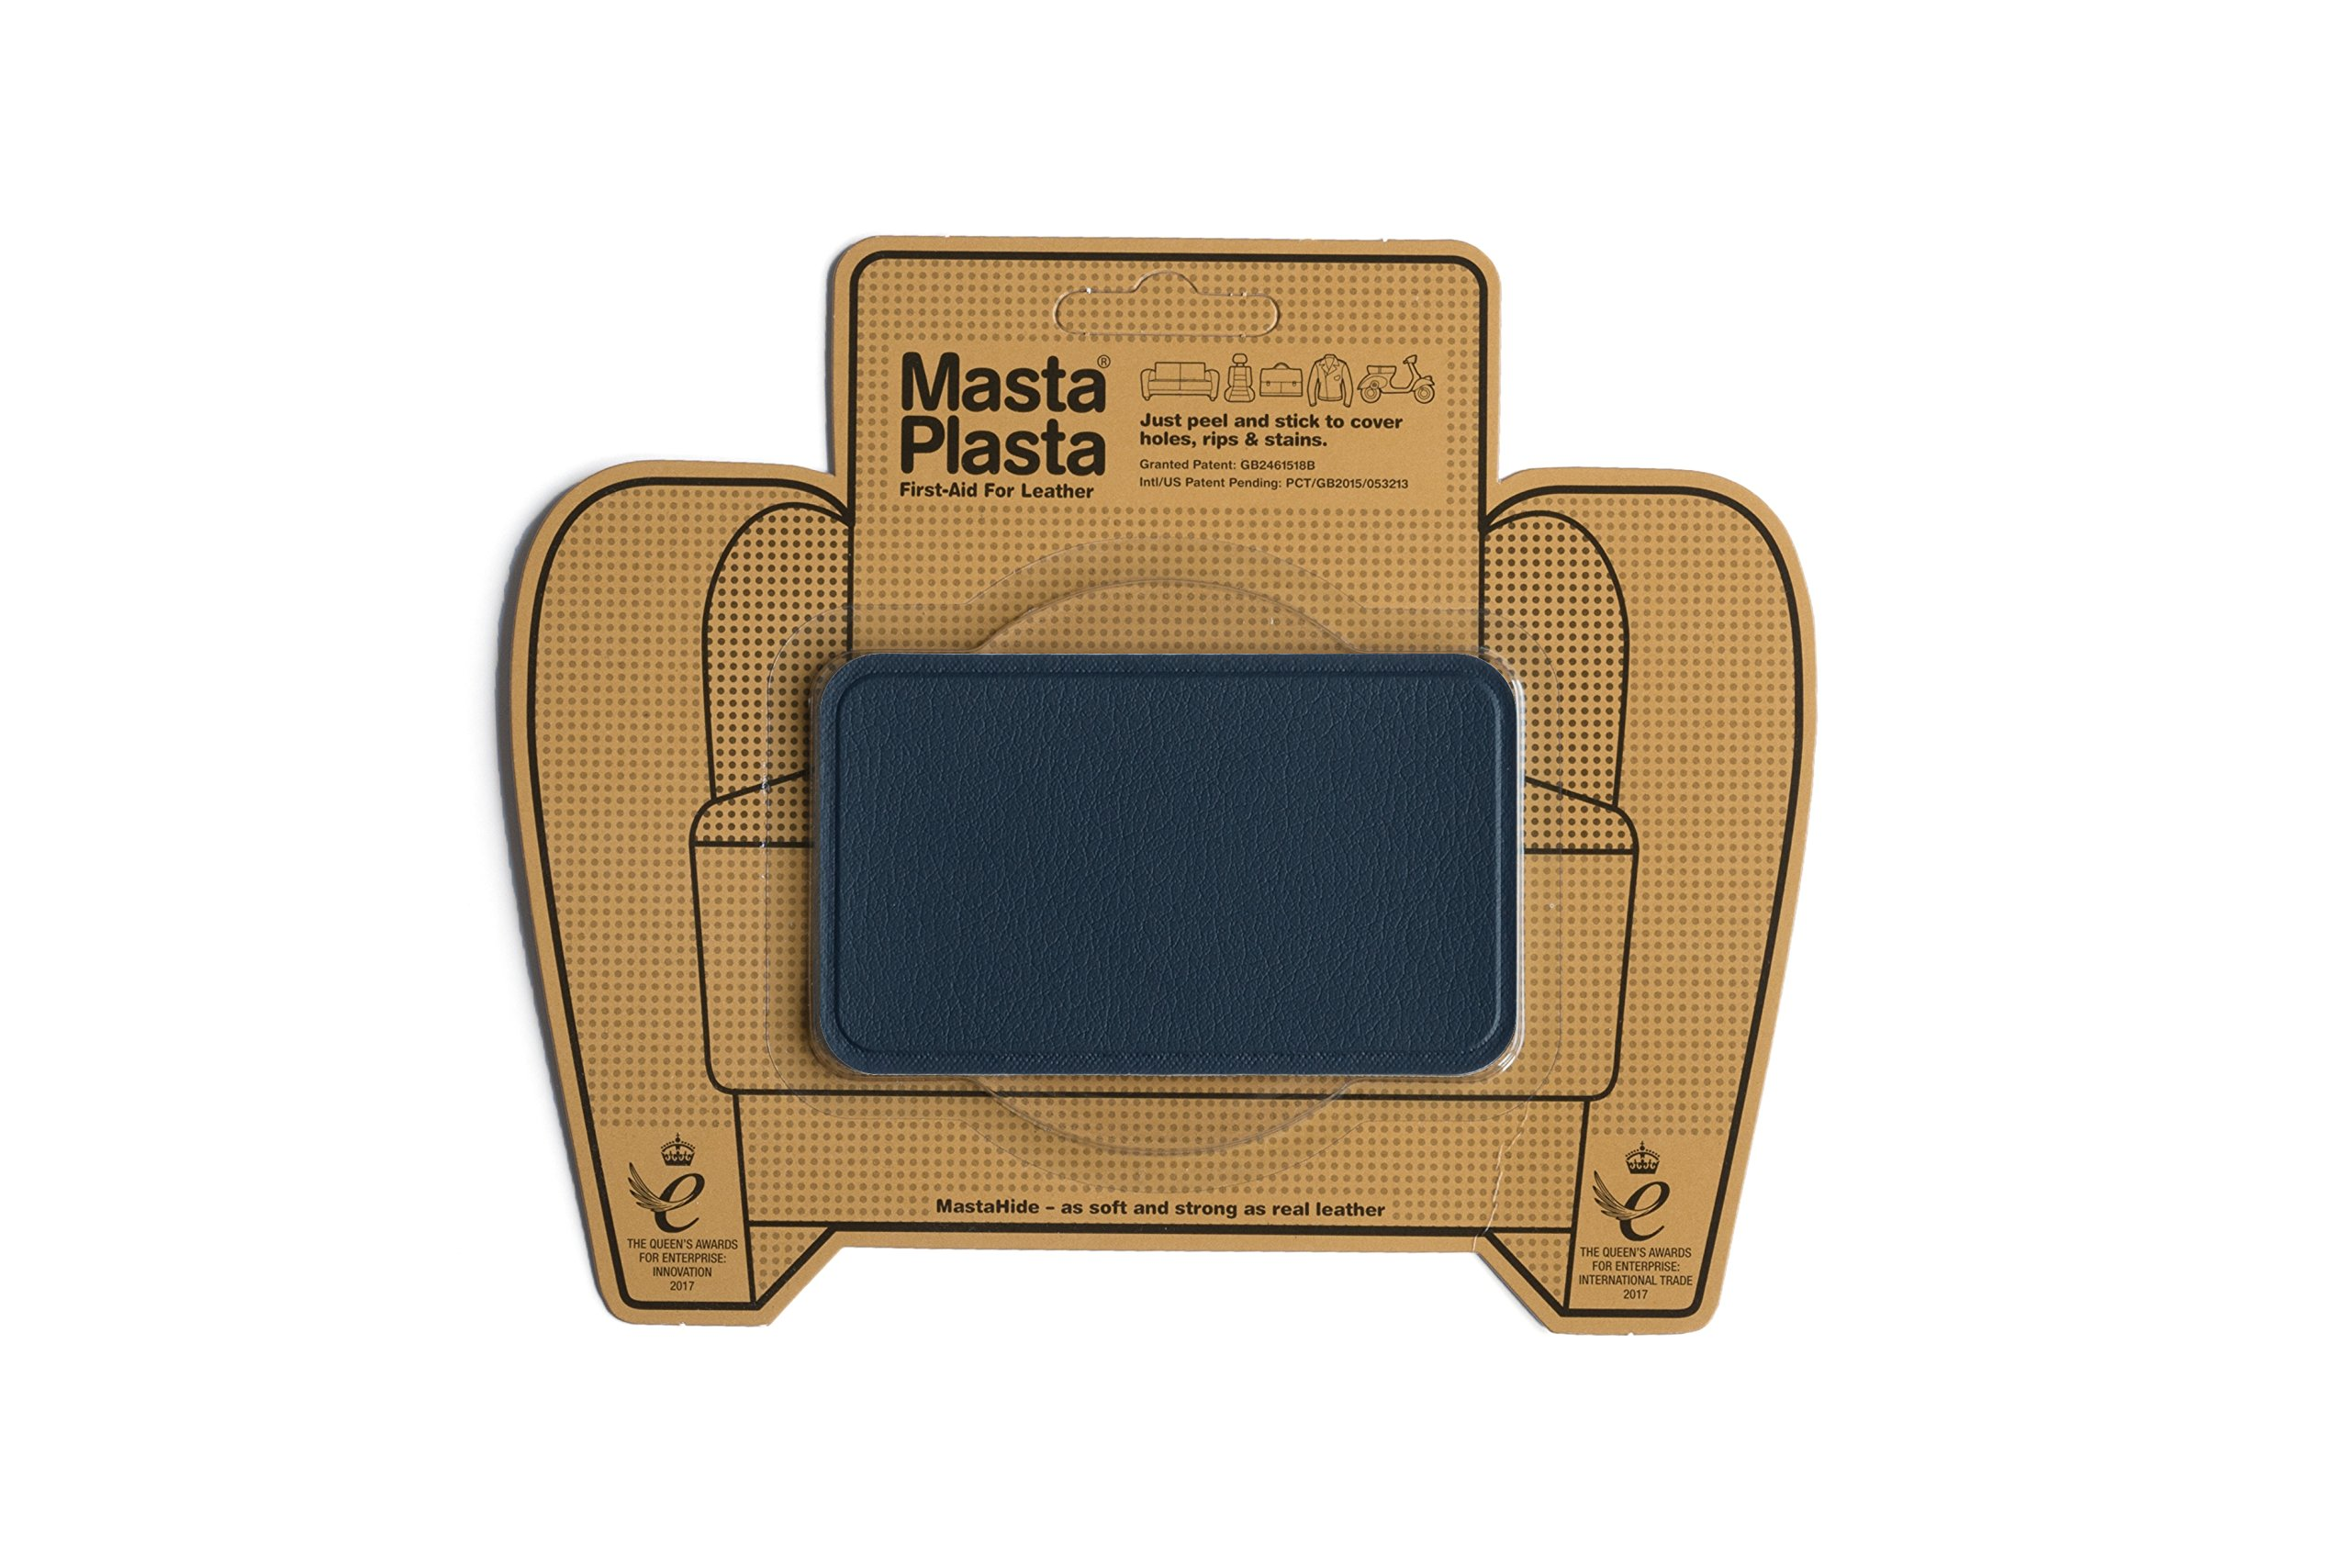 MastaPlasta Self-Adhesive Patch for Leather and Vinyl Repair, Medium, Navy– Multiple Colors Available